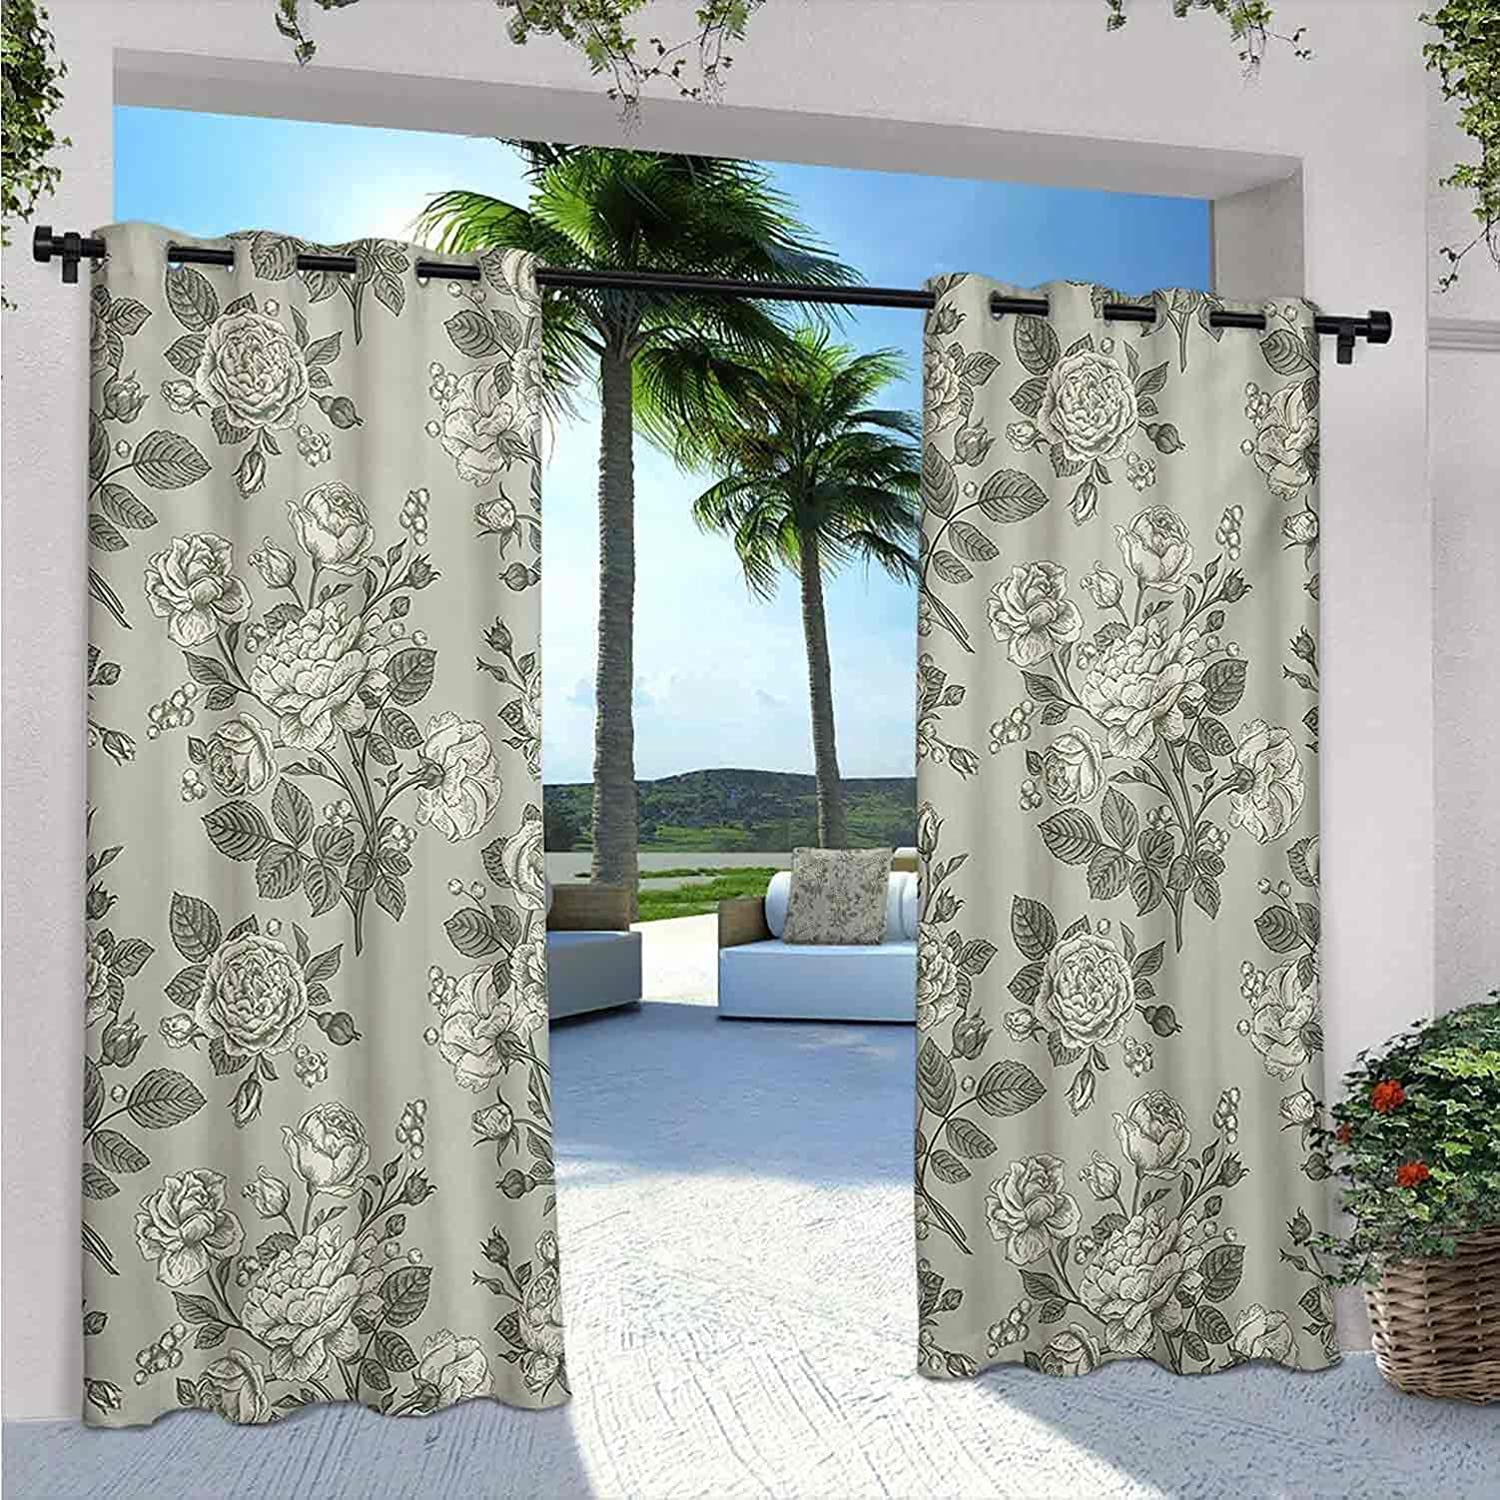 Grey Outdoor Patio Curtains Bamboo Leaves Tree Long Beach Popular products Mall Sketchy Base Zen